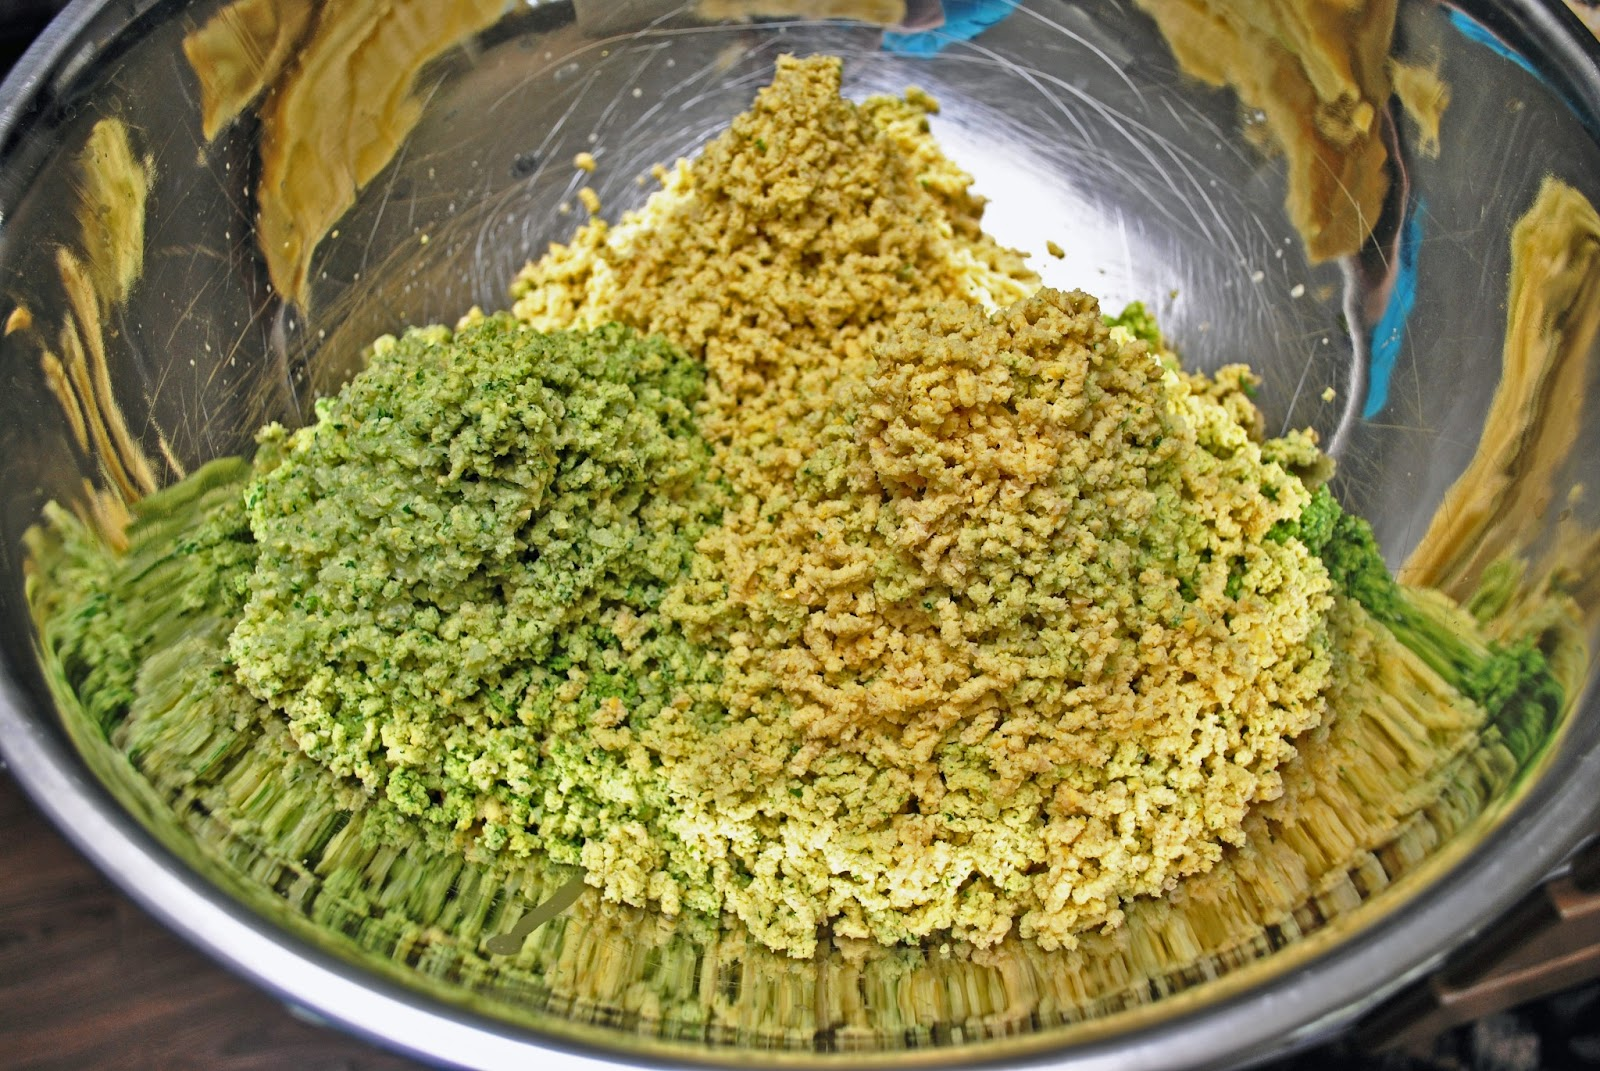 Ground up falafel mixture